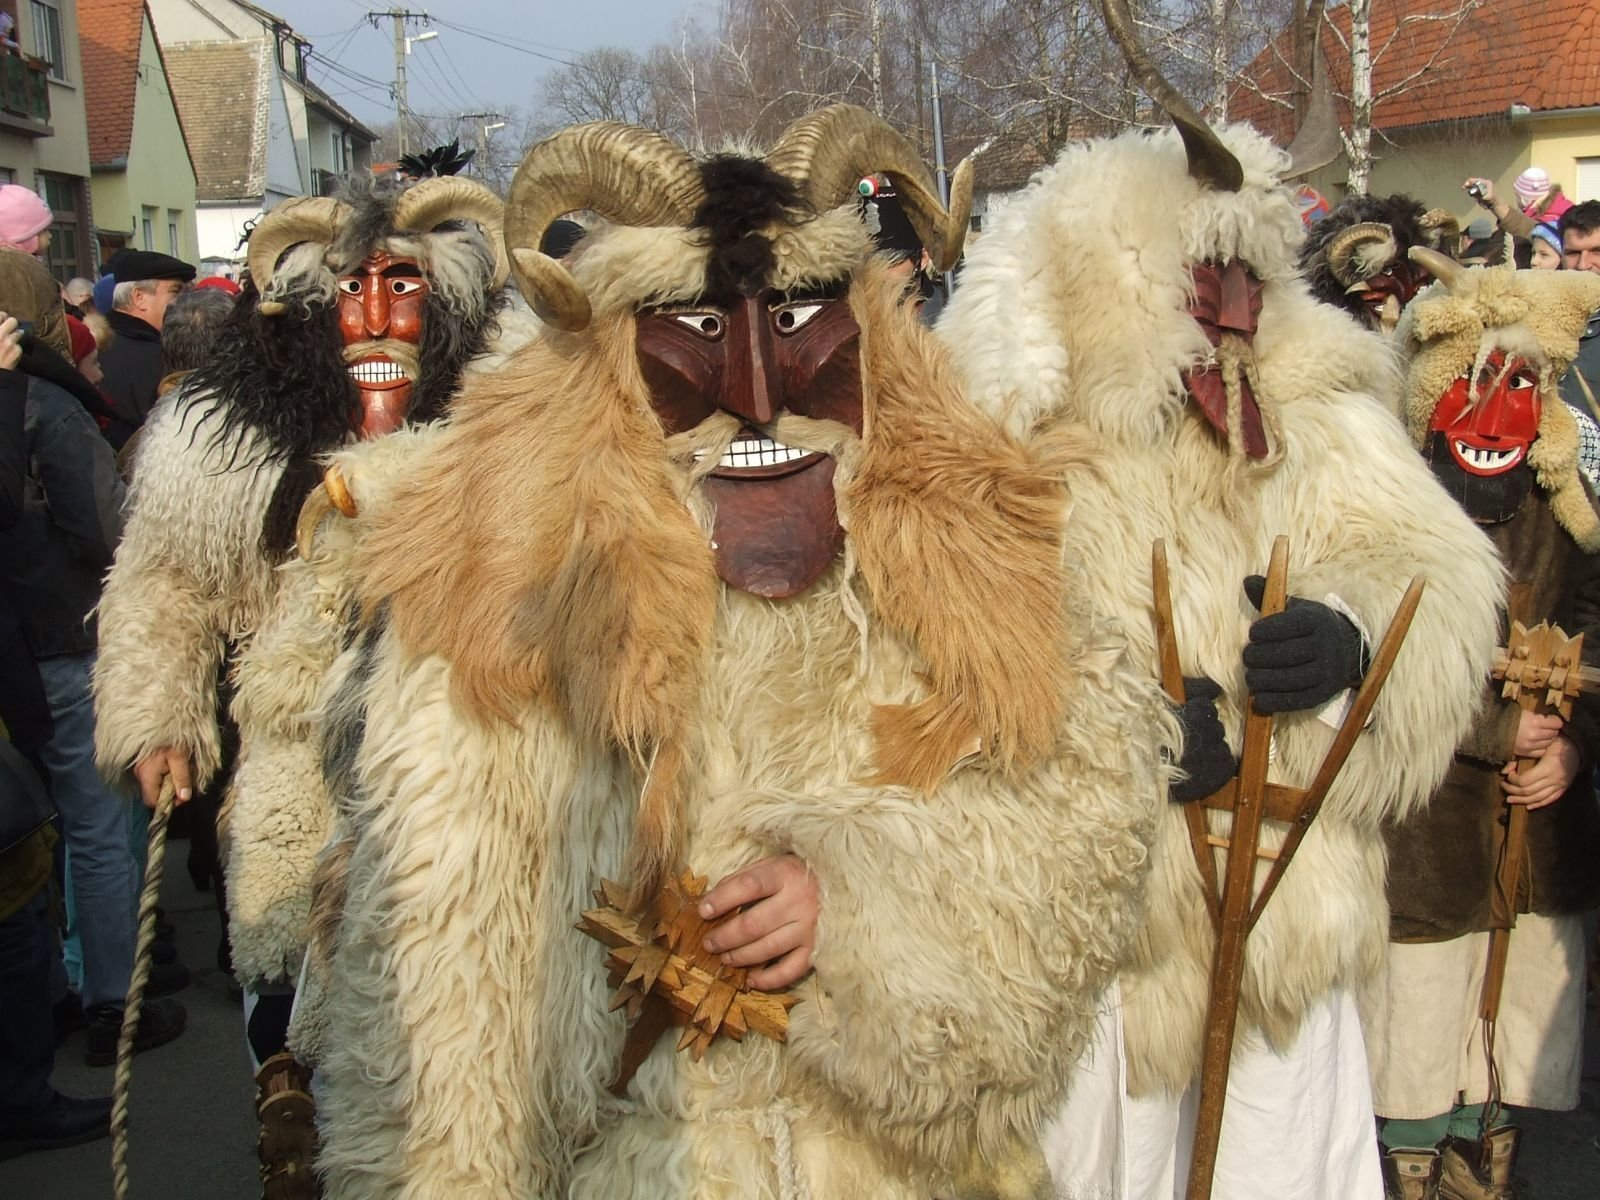 'Busó-Walking' From February 27 – Record Number Of Guisers And Sellers In Mohács